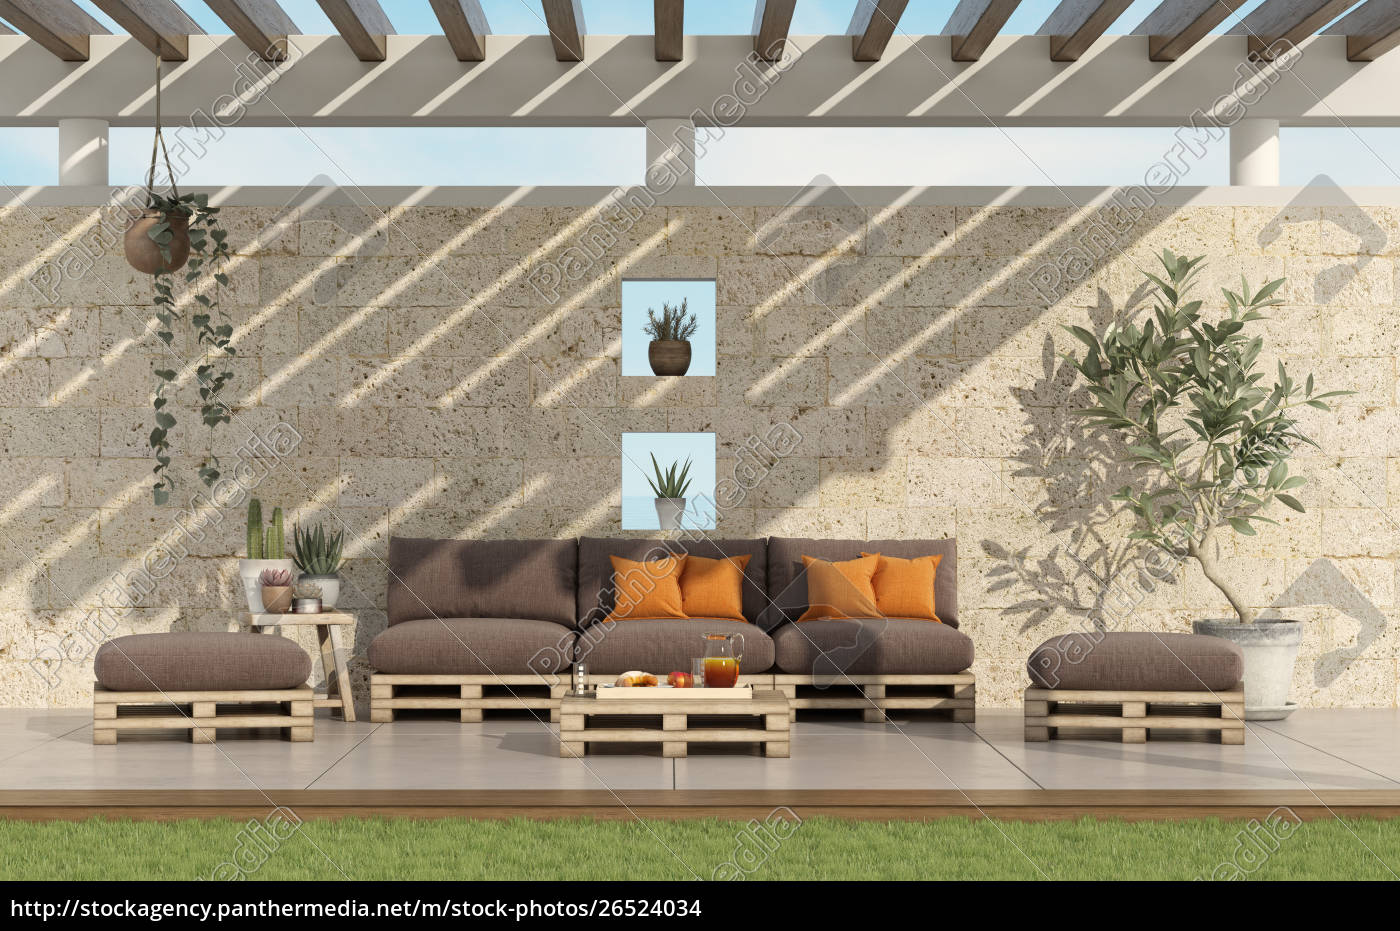 Garden With Pallet Sofa With Stone Wall On Background Stock Image 26524034 Panthermedia Stock Agency